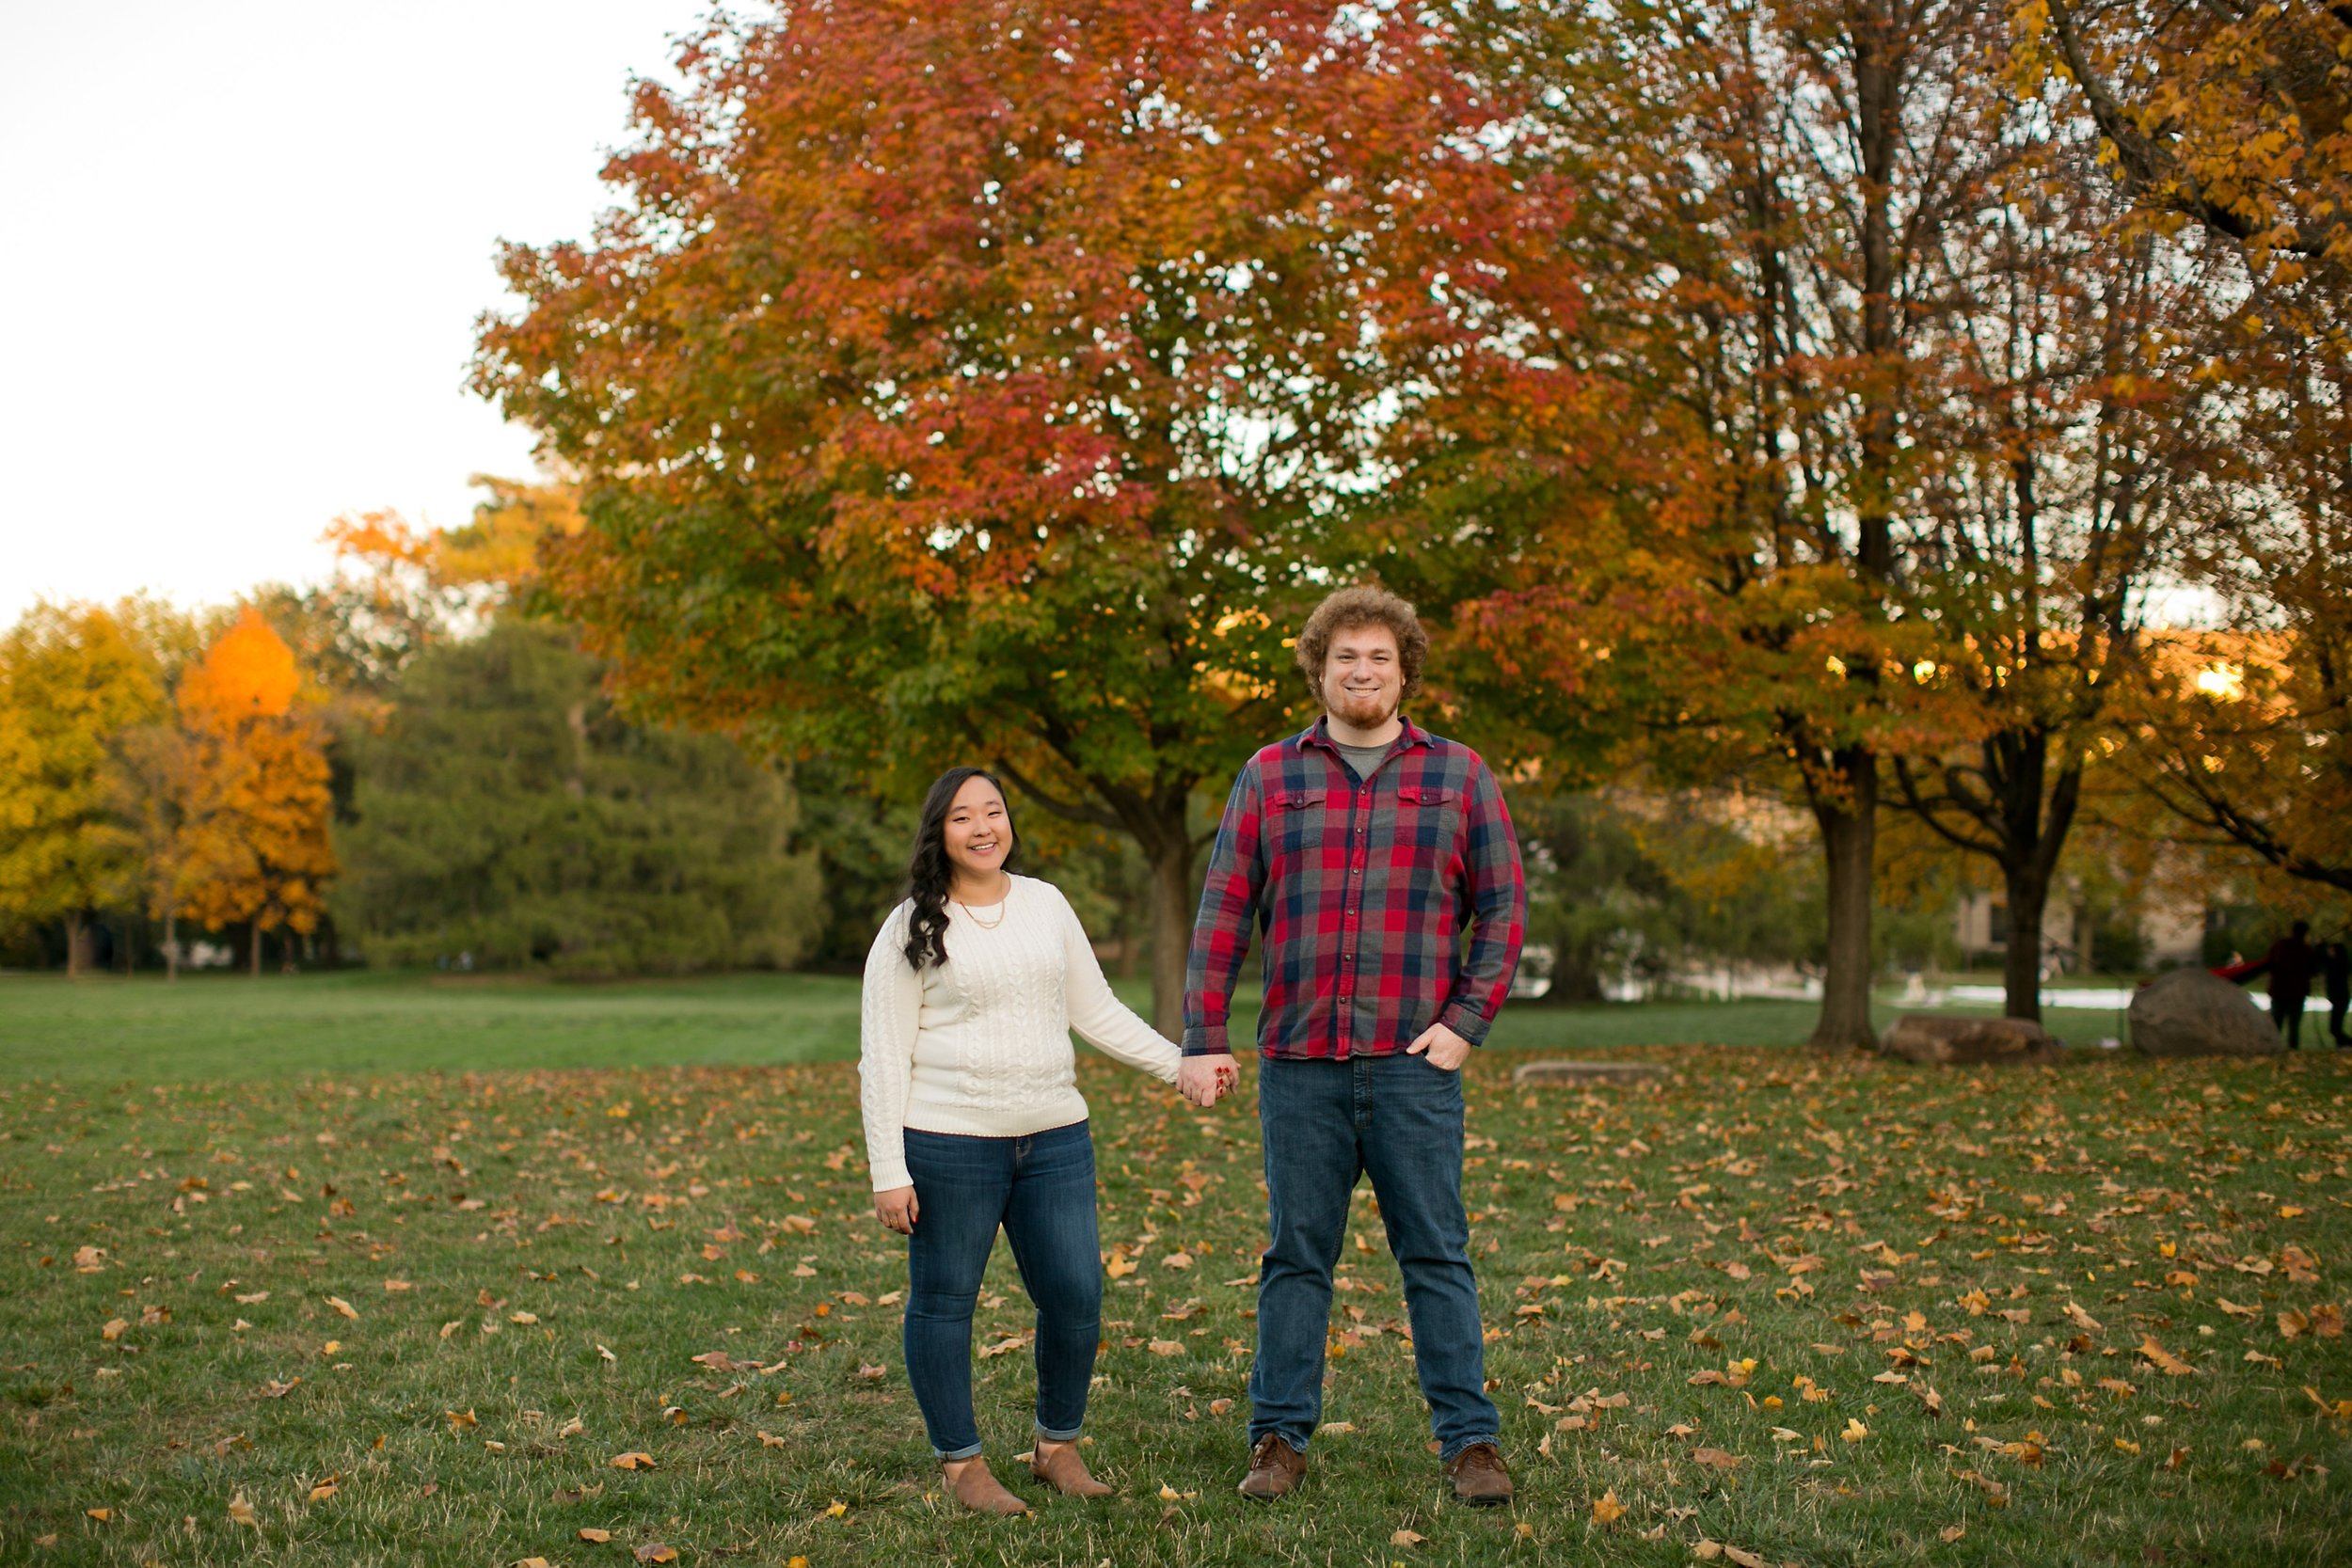 fall engagement photos at Iowa State University central campus